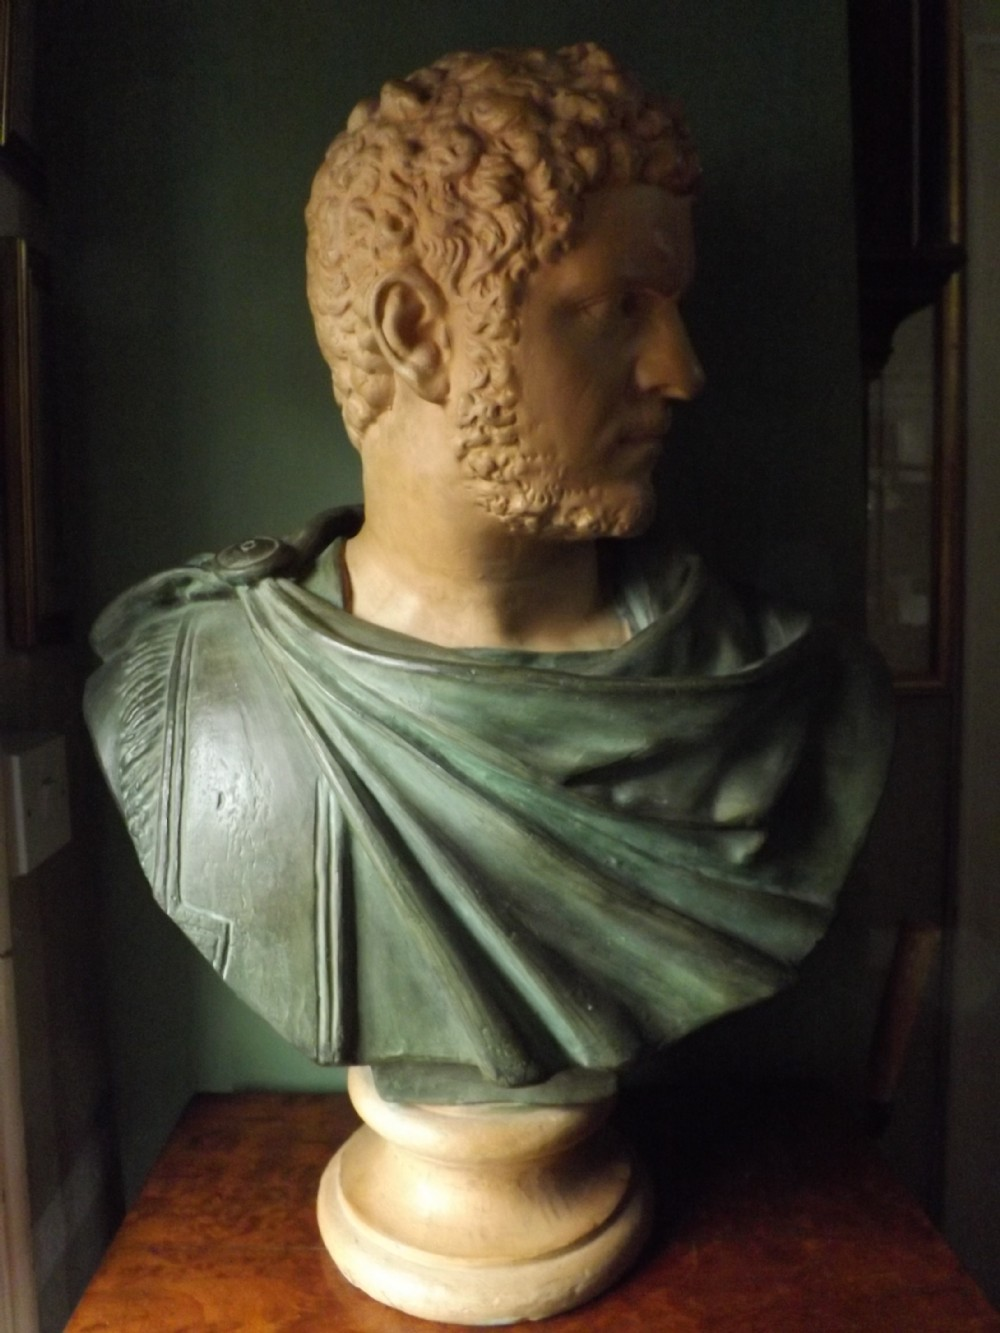 late c19th terracotta library bust study of the infamous roman emperor caracalla